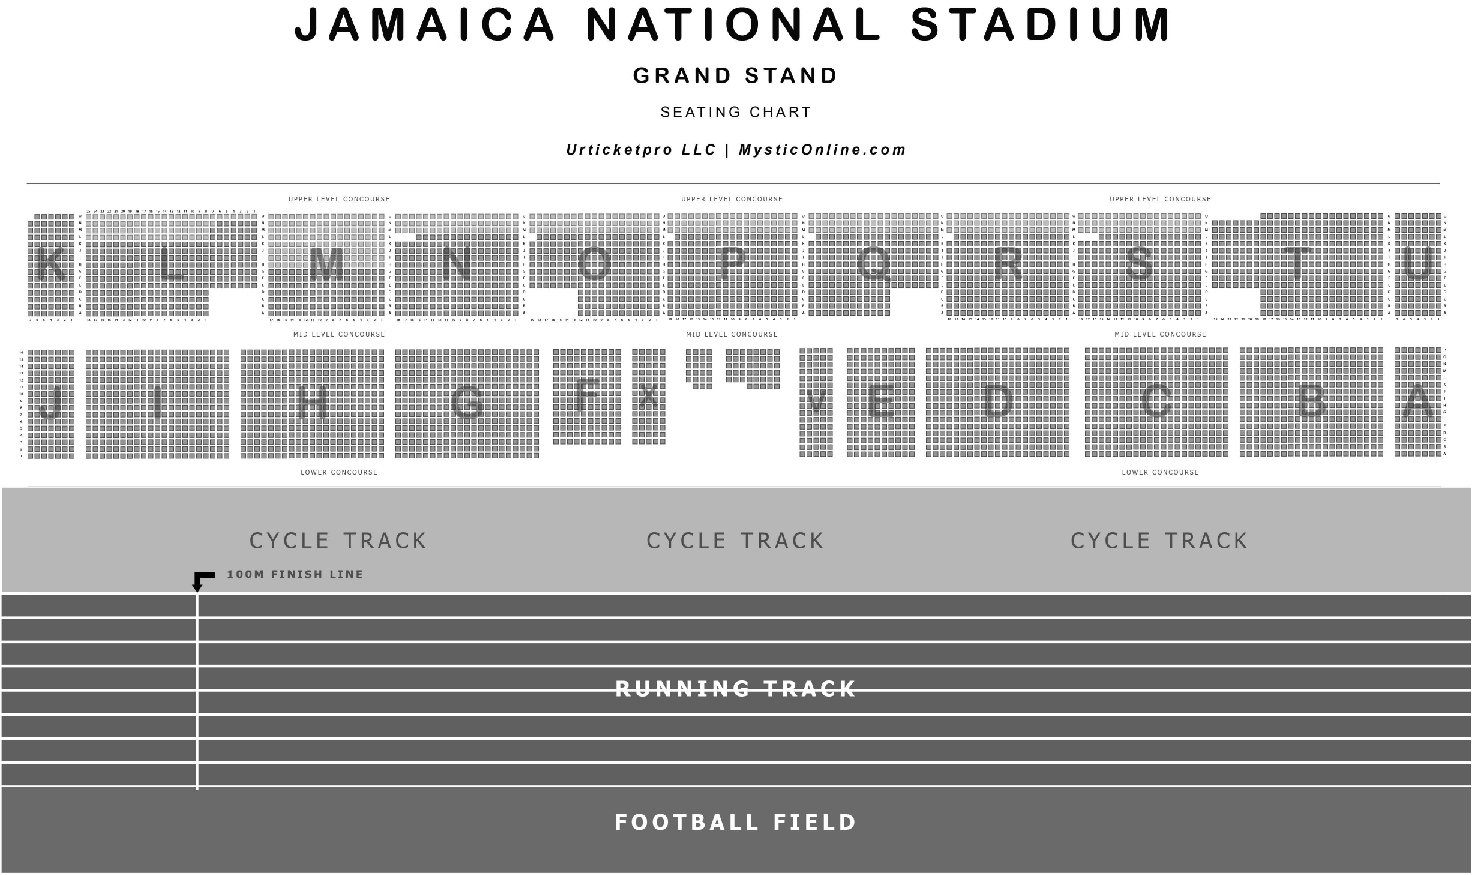 Jamaica National Stadium - Grandstand Seating Reference